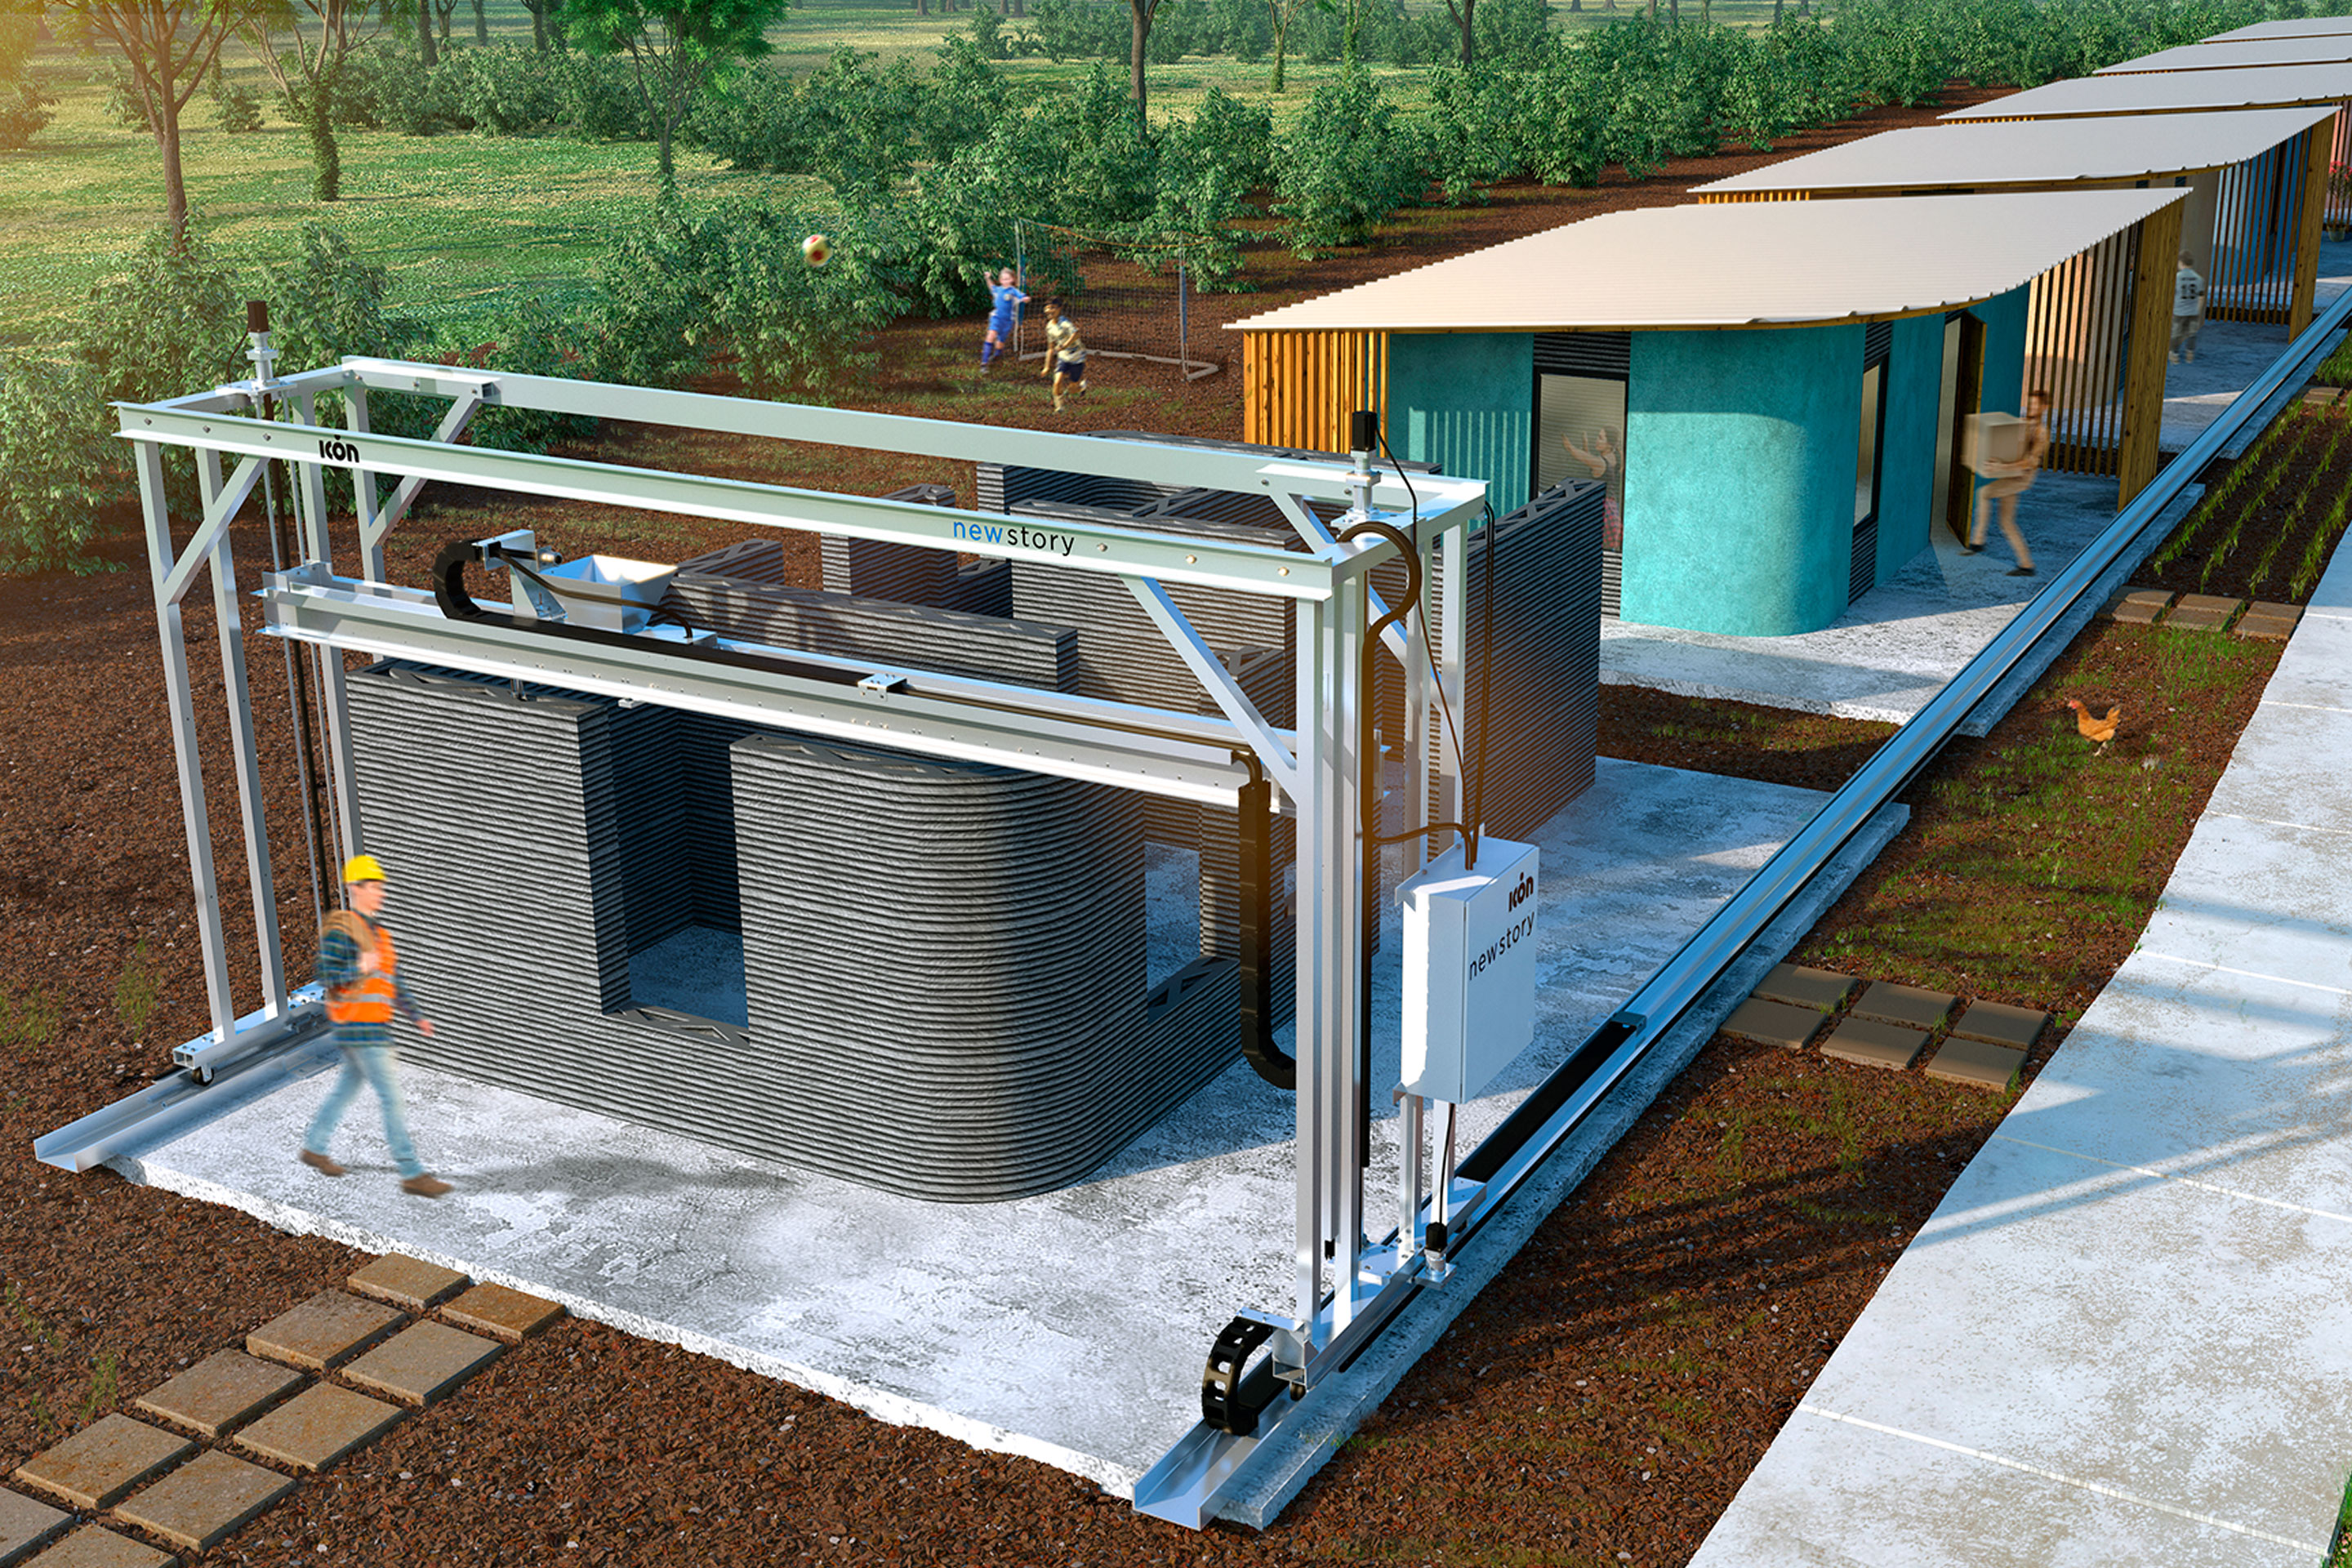 Rendering of how Icon's Vulcan 3-D printing maching can generate entire homes in under 48-hours.